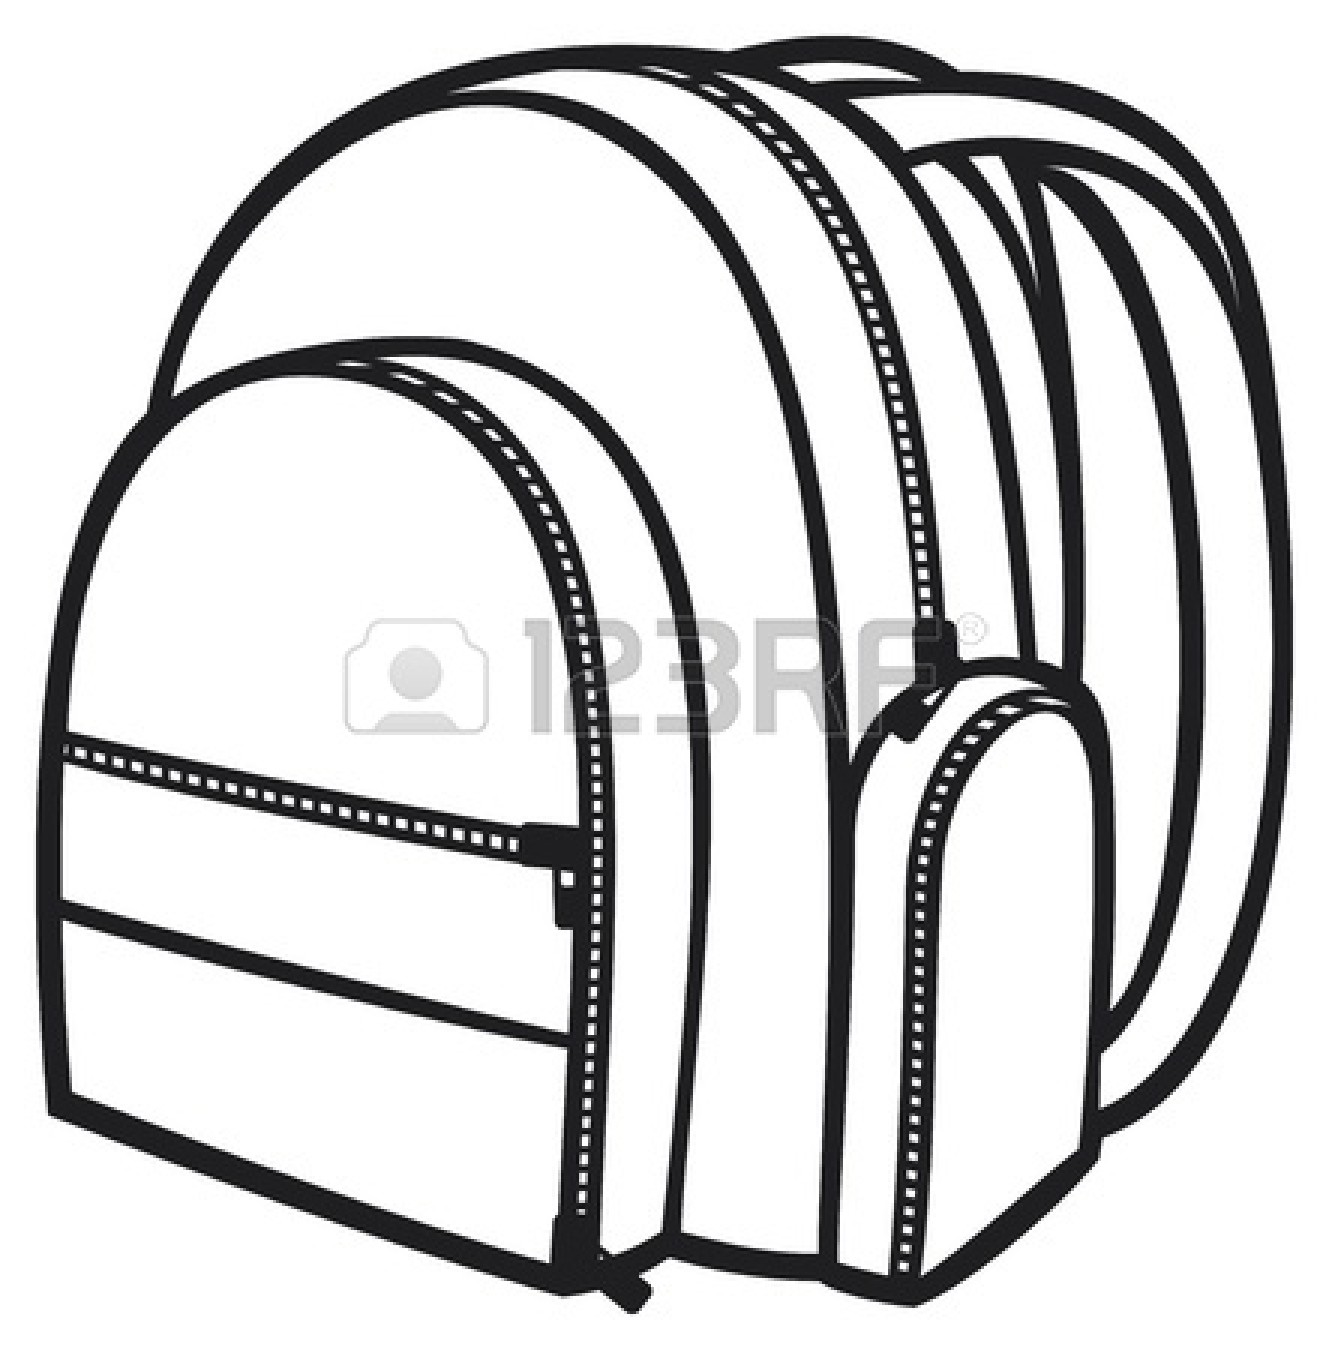 clipart rucksack - photo #45